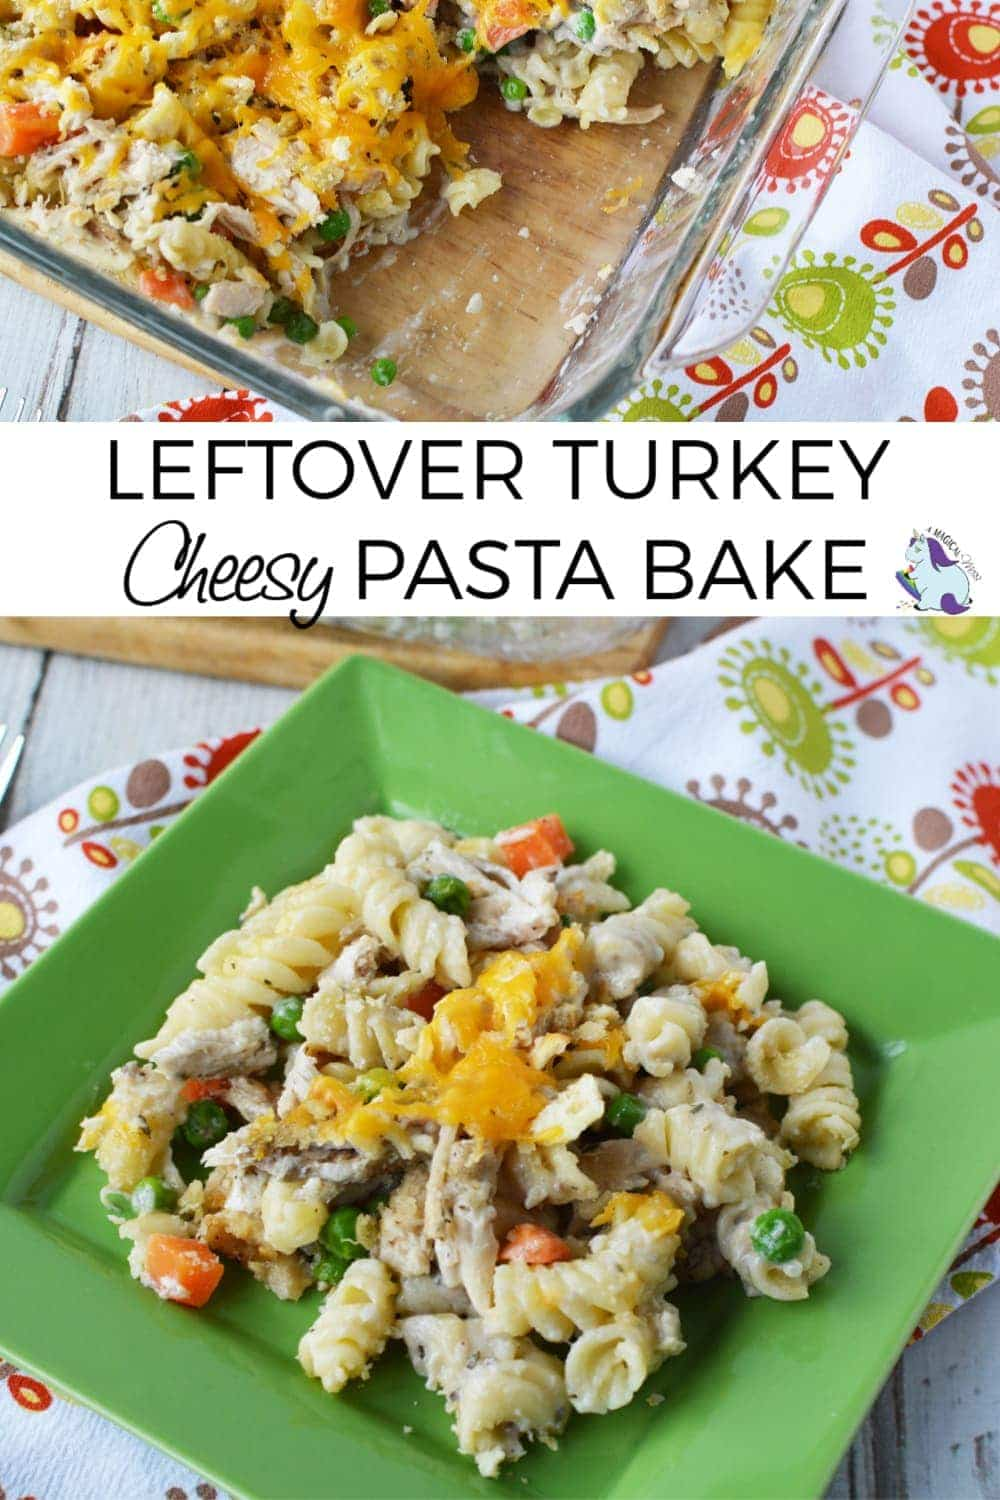 Turkey Pasta Bake with Veggies and Cheese #pasta #turkey #leftovers #noodles #veggies